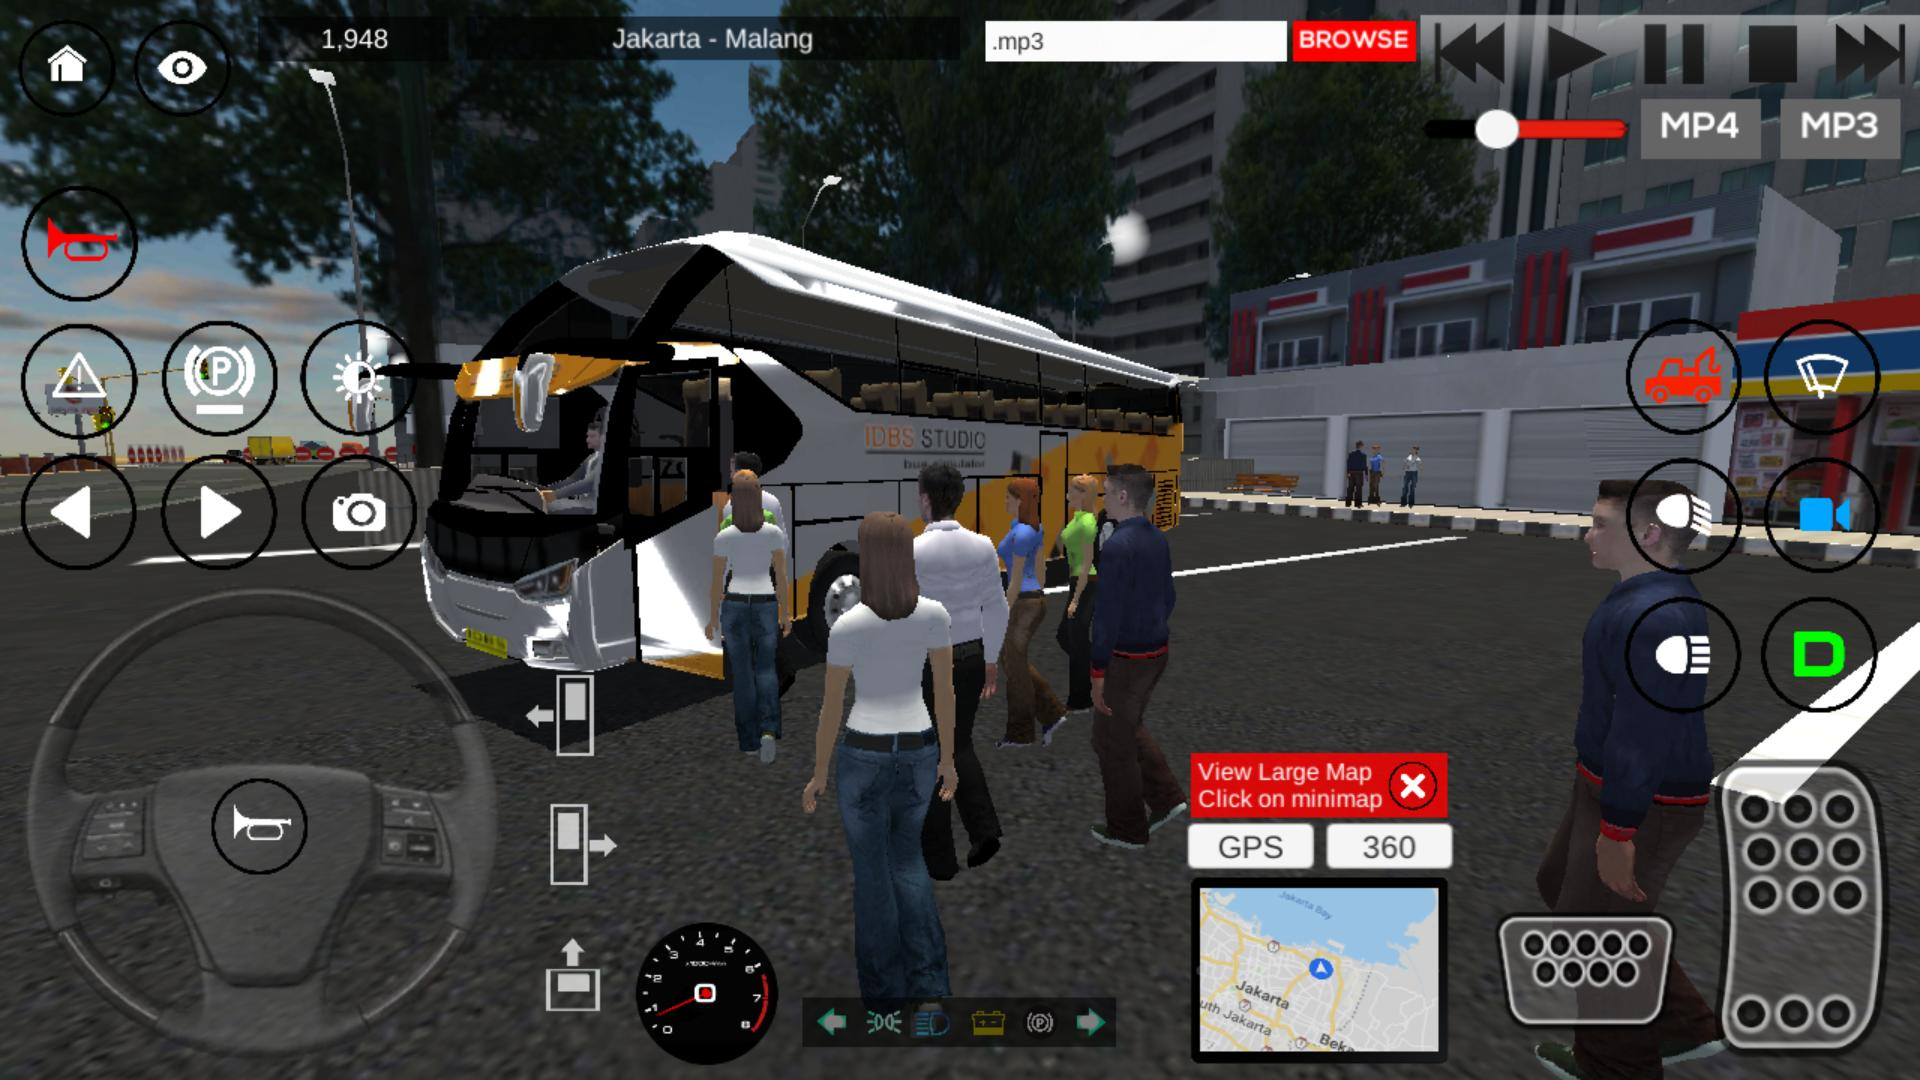 IDBS Bus Simulator for Android - APK Download